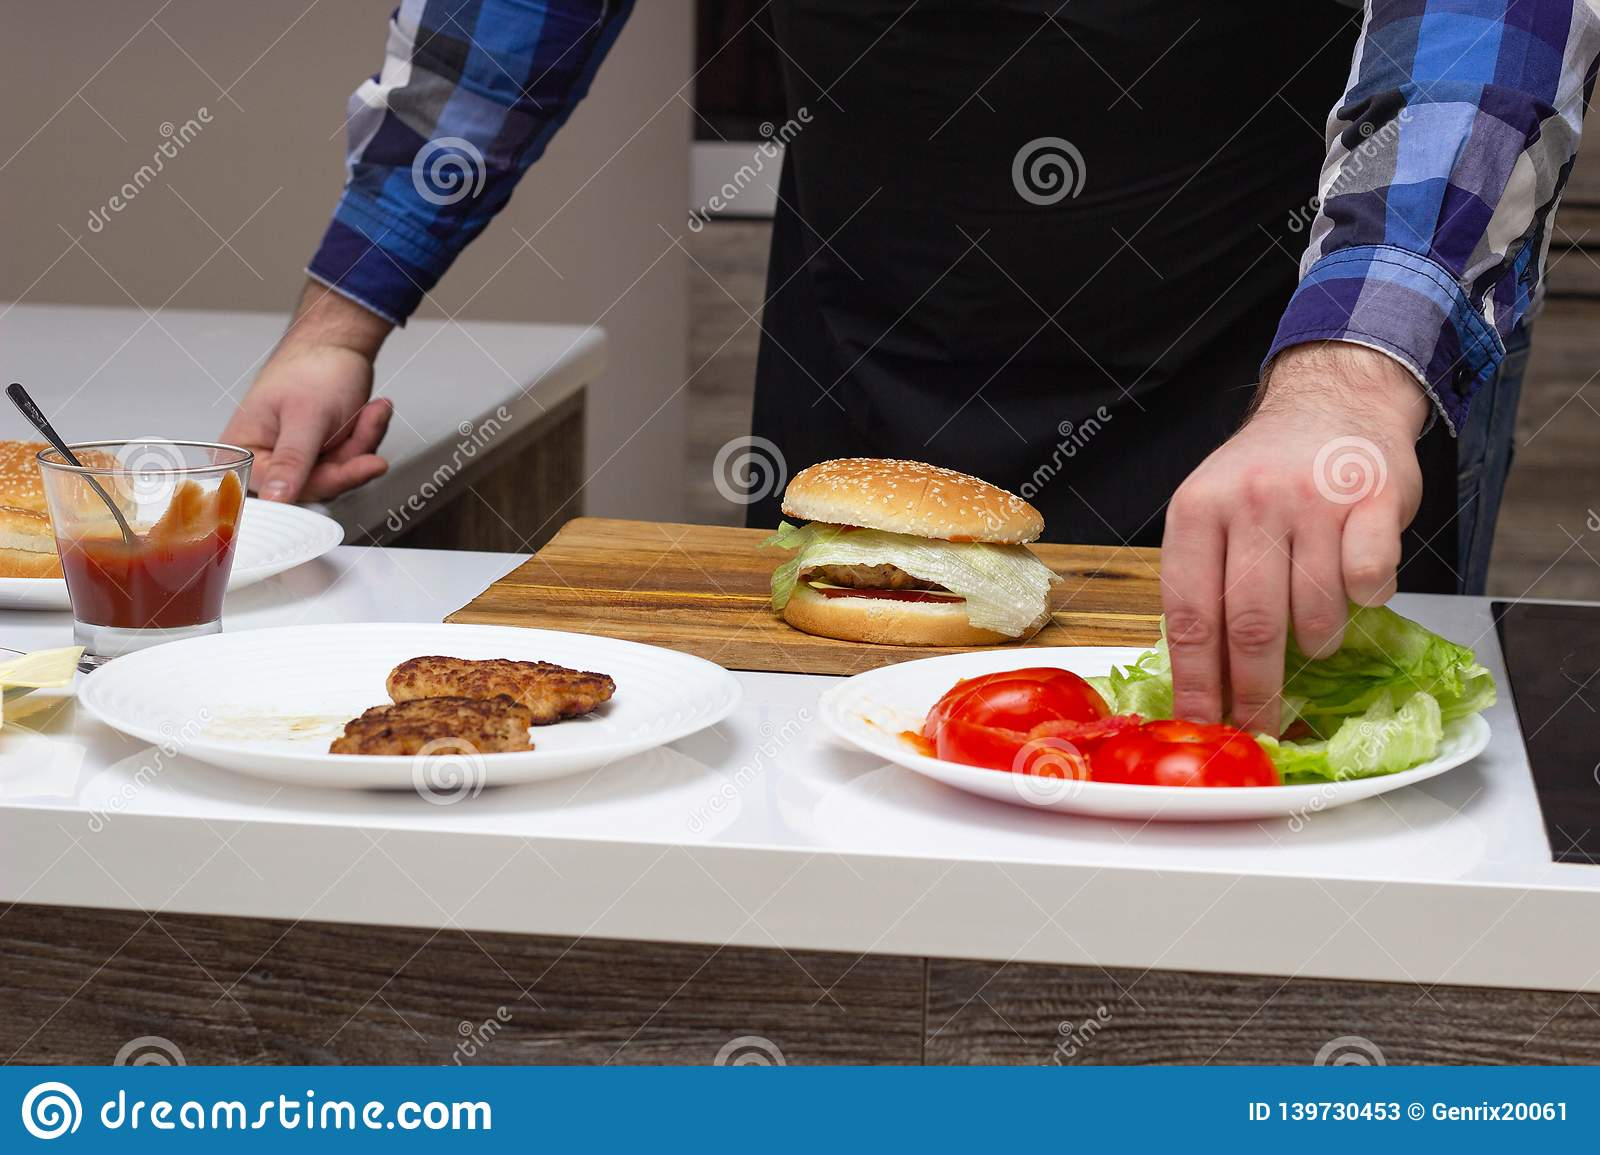 Male cook preparing cheeseburgers and hamburgers in the kitchen, on the table are the ingredients